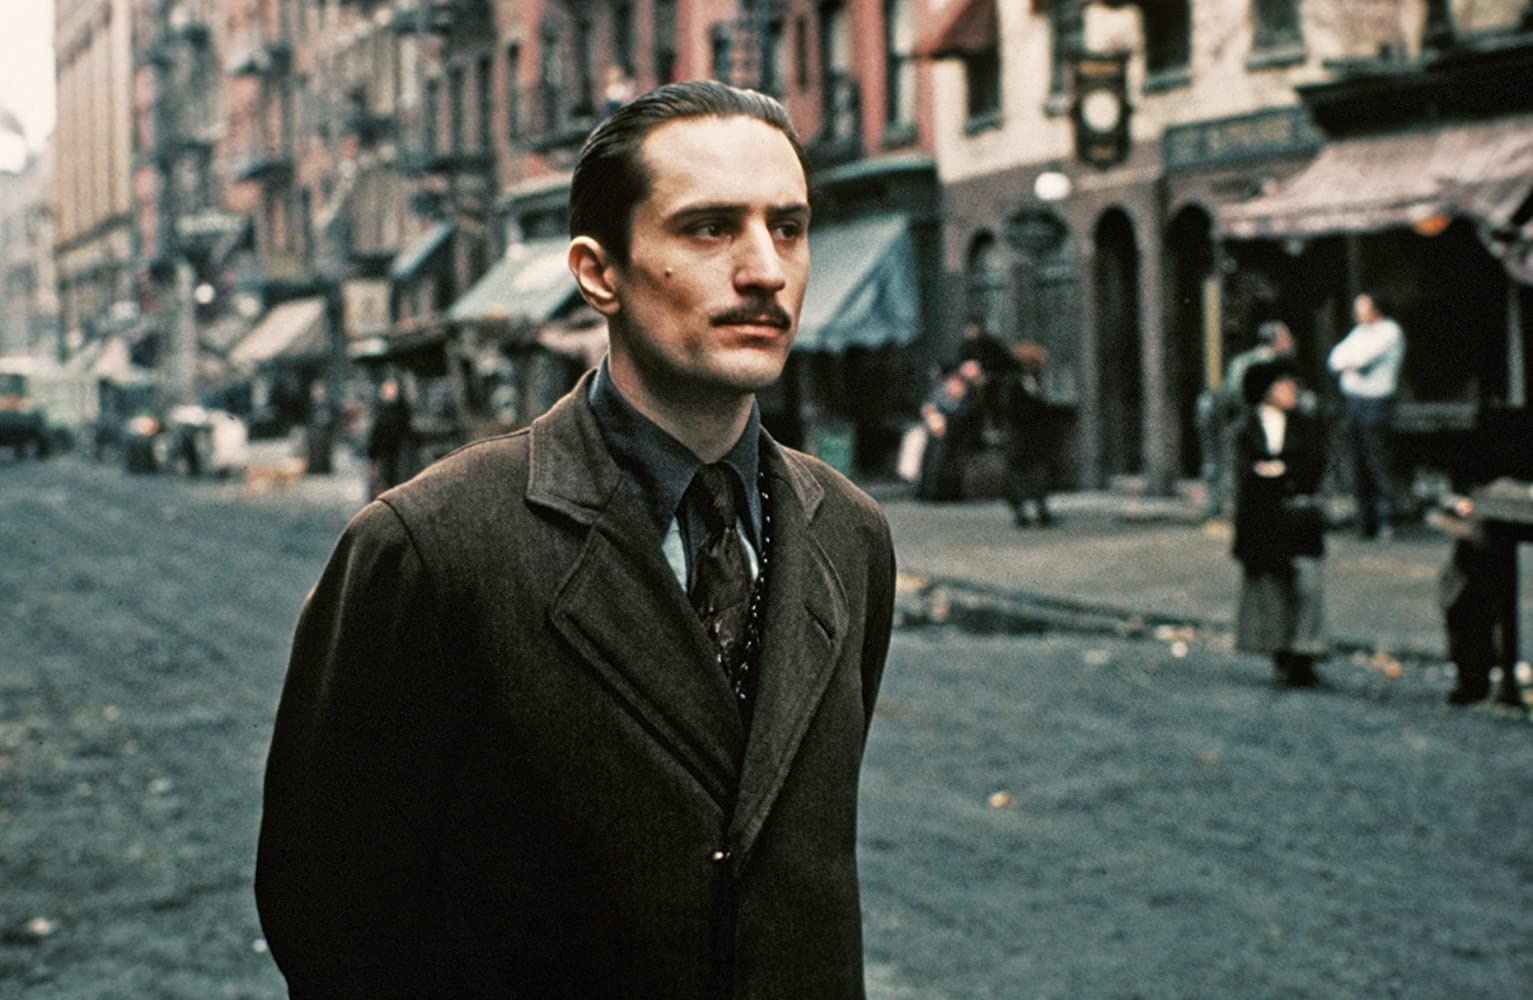 Robert De Niro in 'The Godfather: Part II' (Courtesy: Michael Ochs Archives/Getty Images)